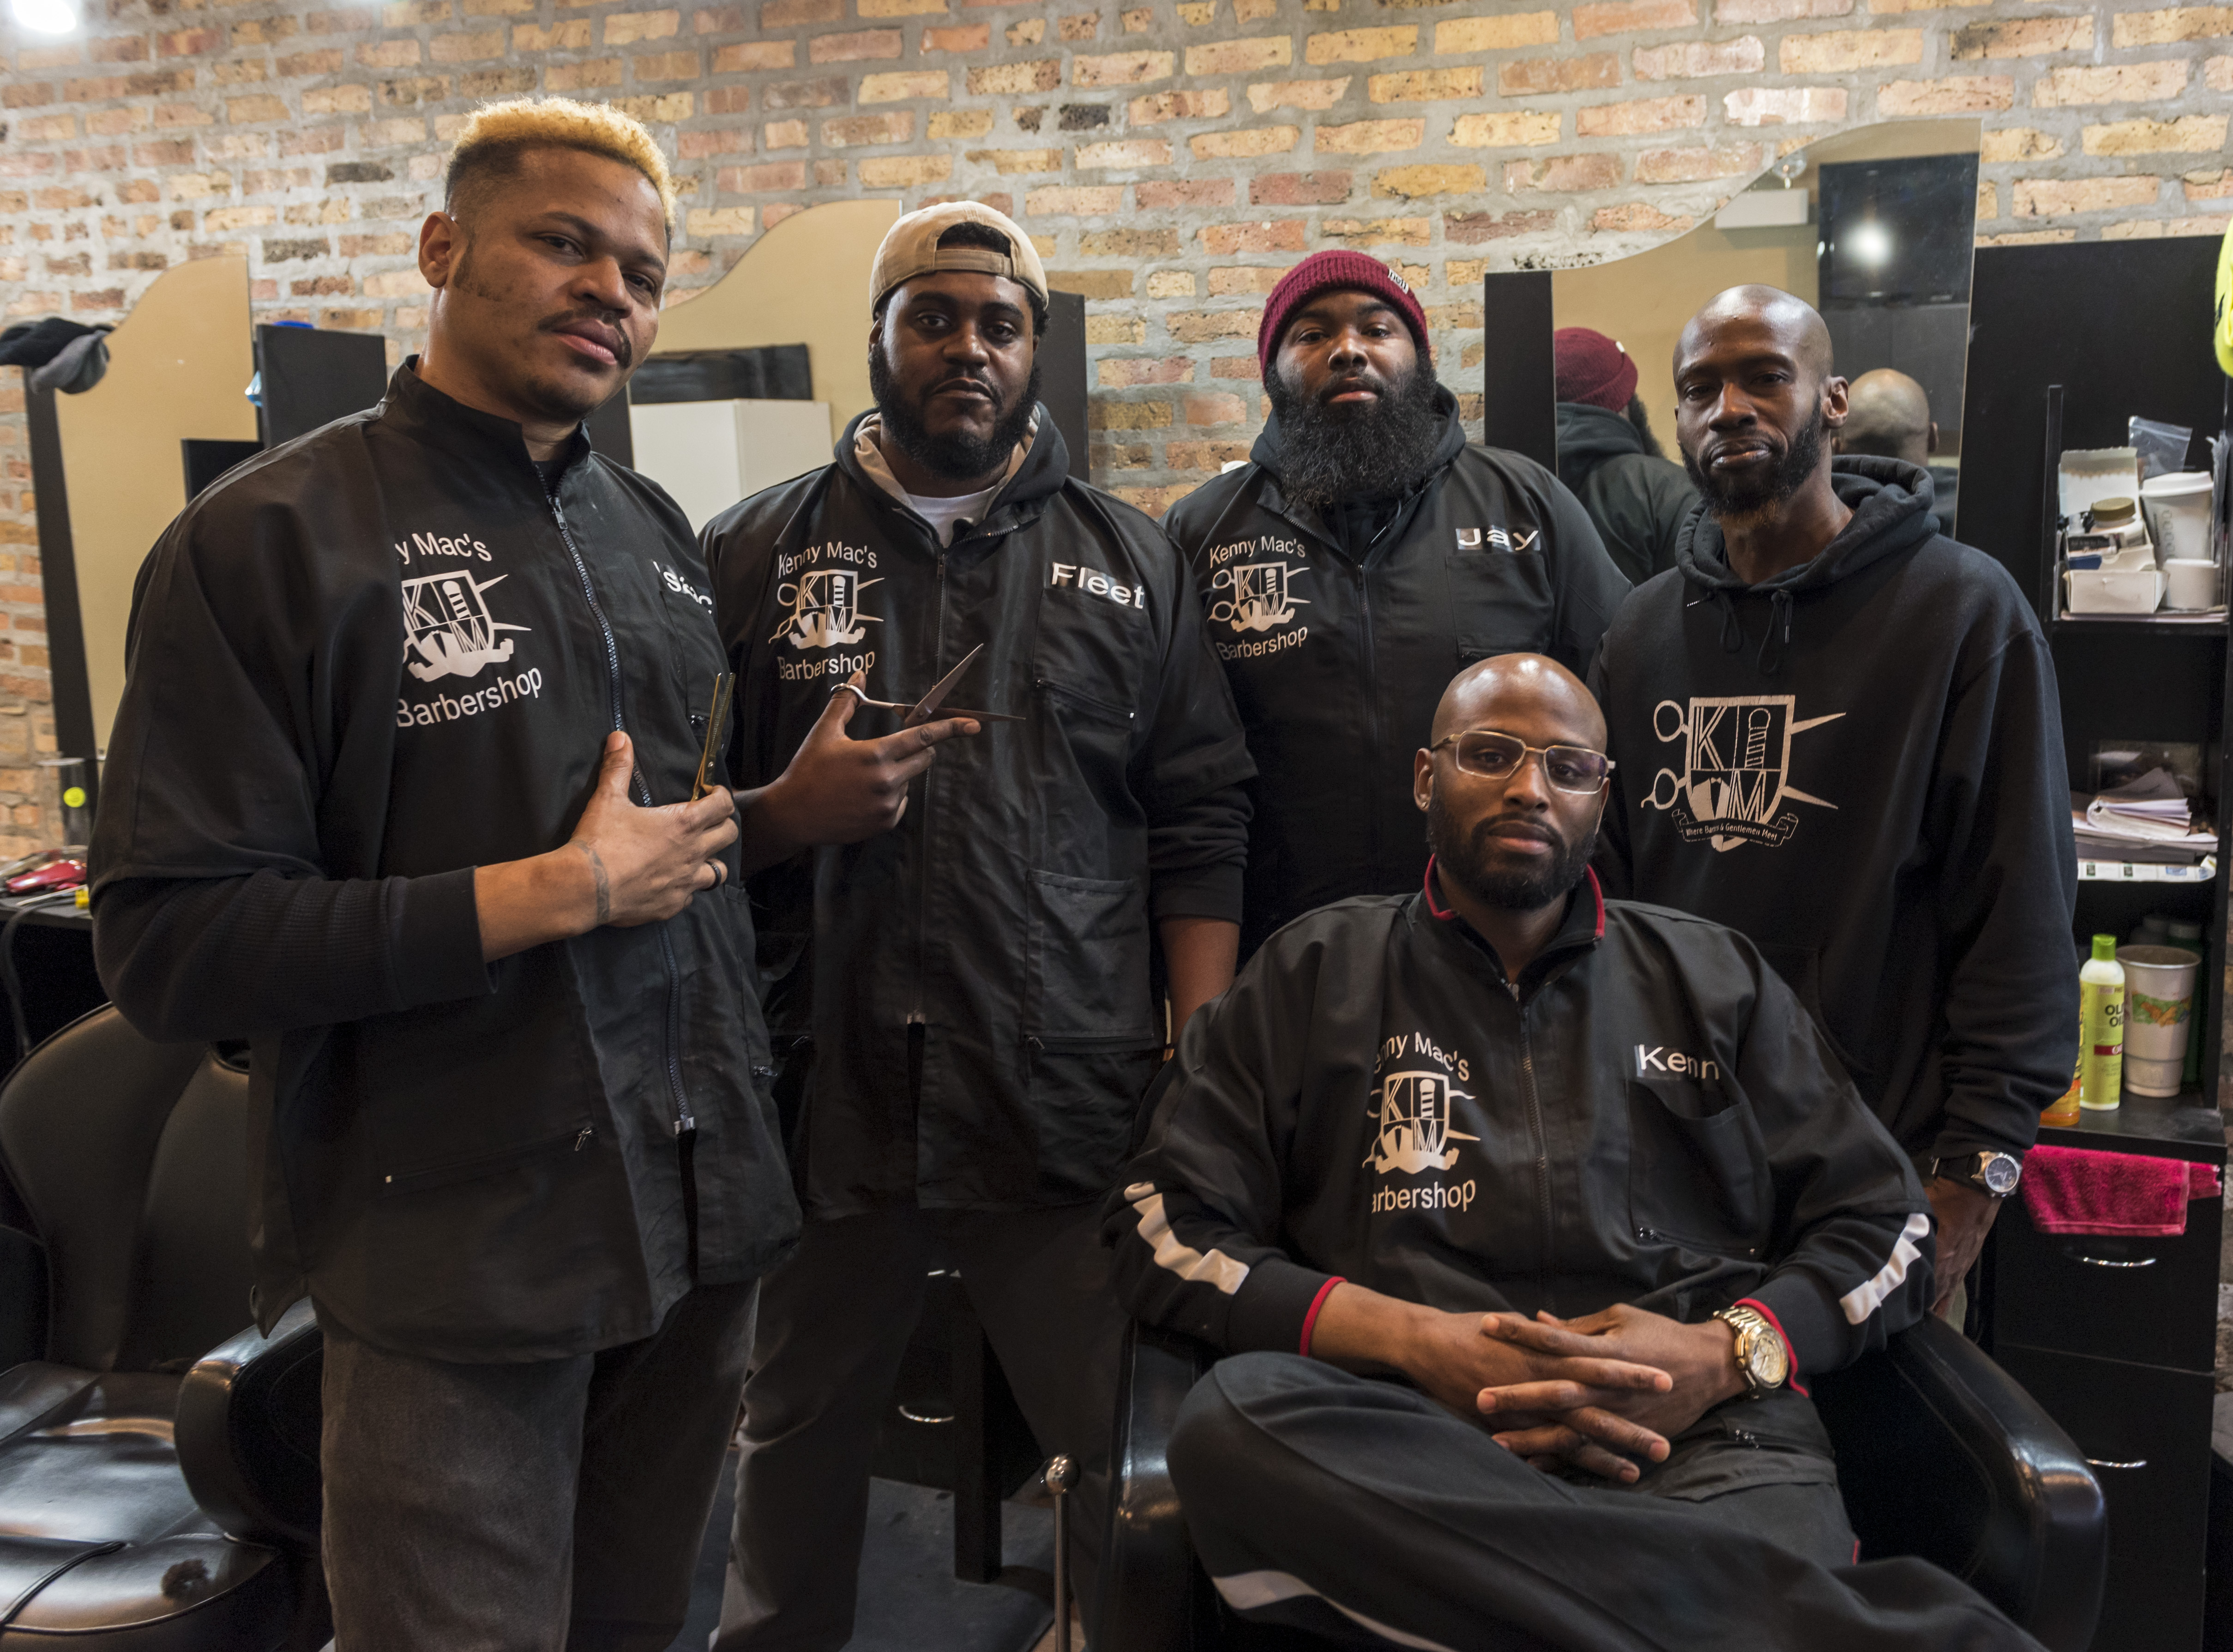 From left to right: Isaac Haygood, Fleetwood Wynton, Jay Johnson, Sean Gee, and seated in the chair is Kenny Mac, the owner of the shop.